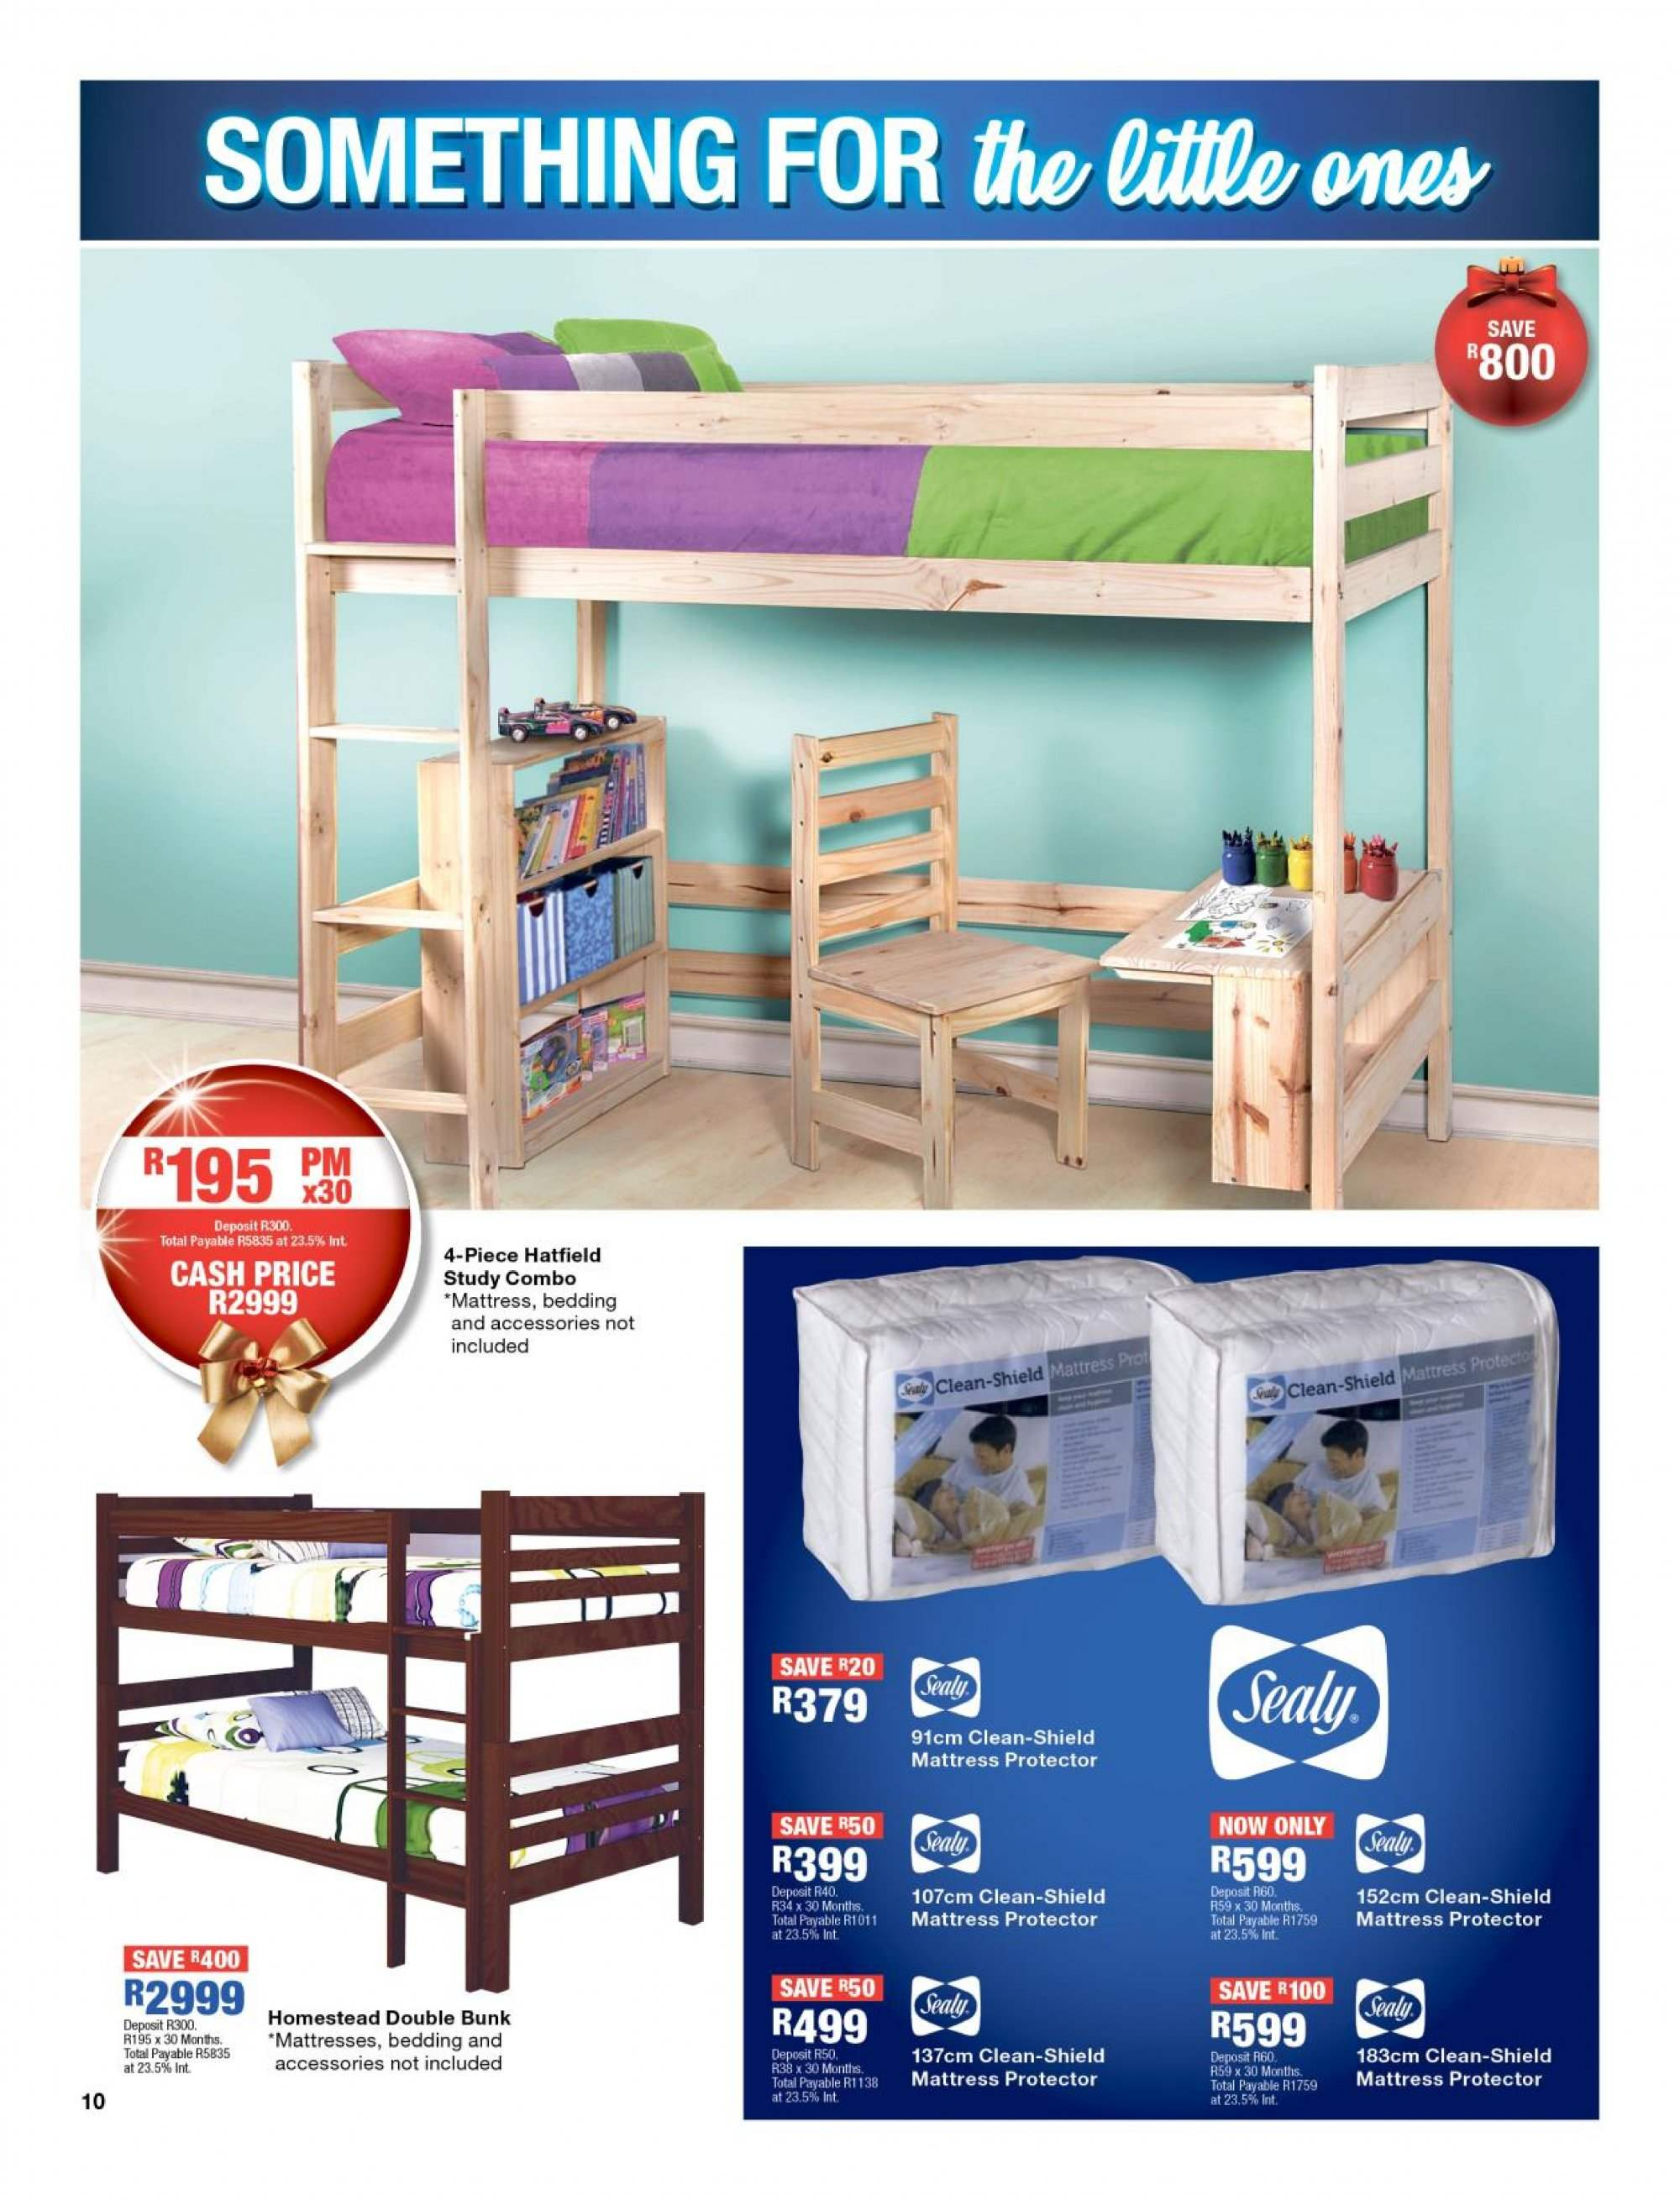 Picture of: Ok Furniture Catalogue 11 20 2018 12 24 2018 Page 10 My Catalogue